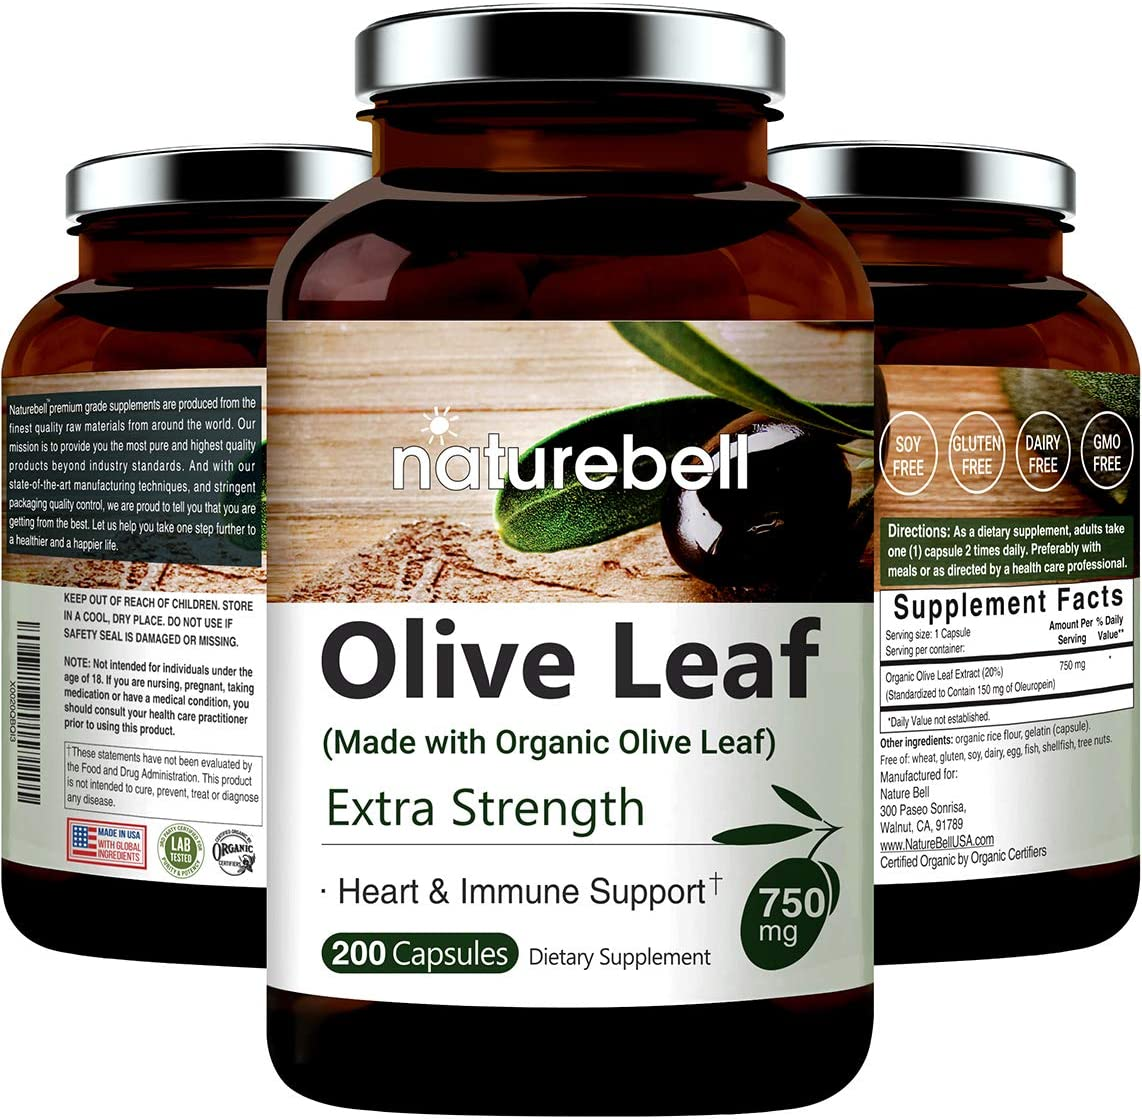 Olive Leaf Extract 750mg, 200 Capsules, Made with Organic Olive Leaf, Active Polyphenols and Oleuropein for Immune and Cardiovascular Health, Non-GMO